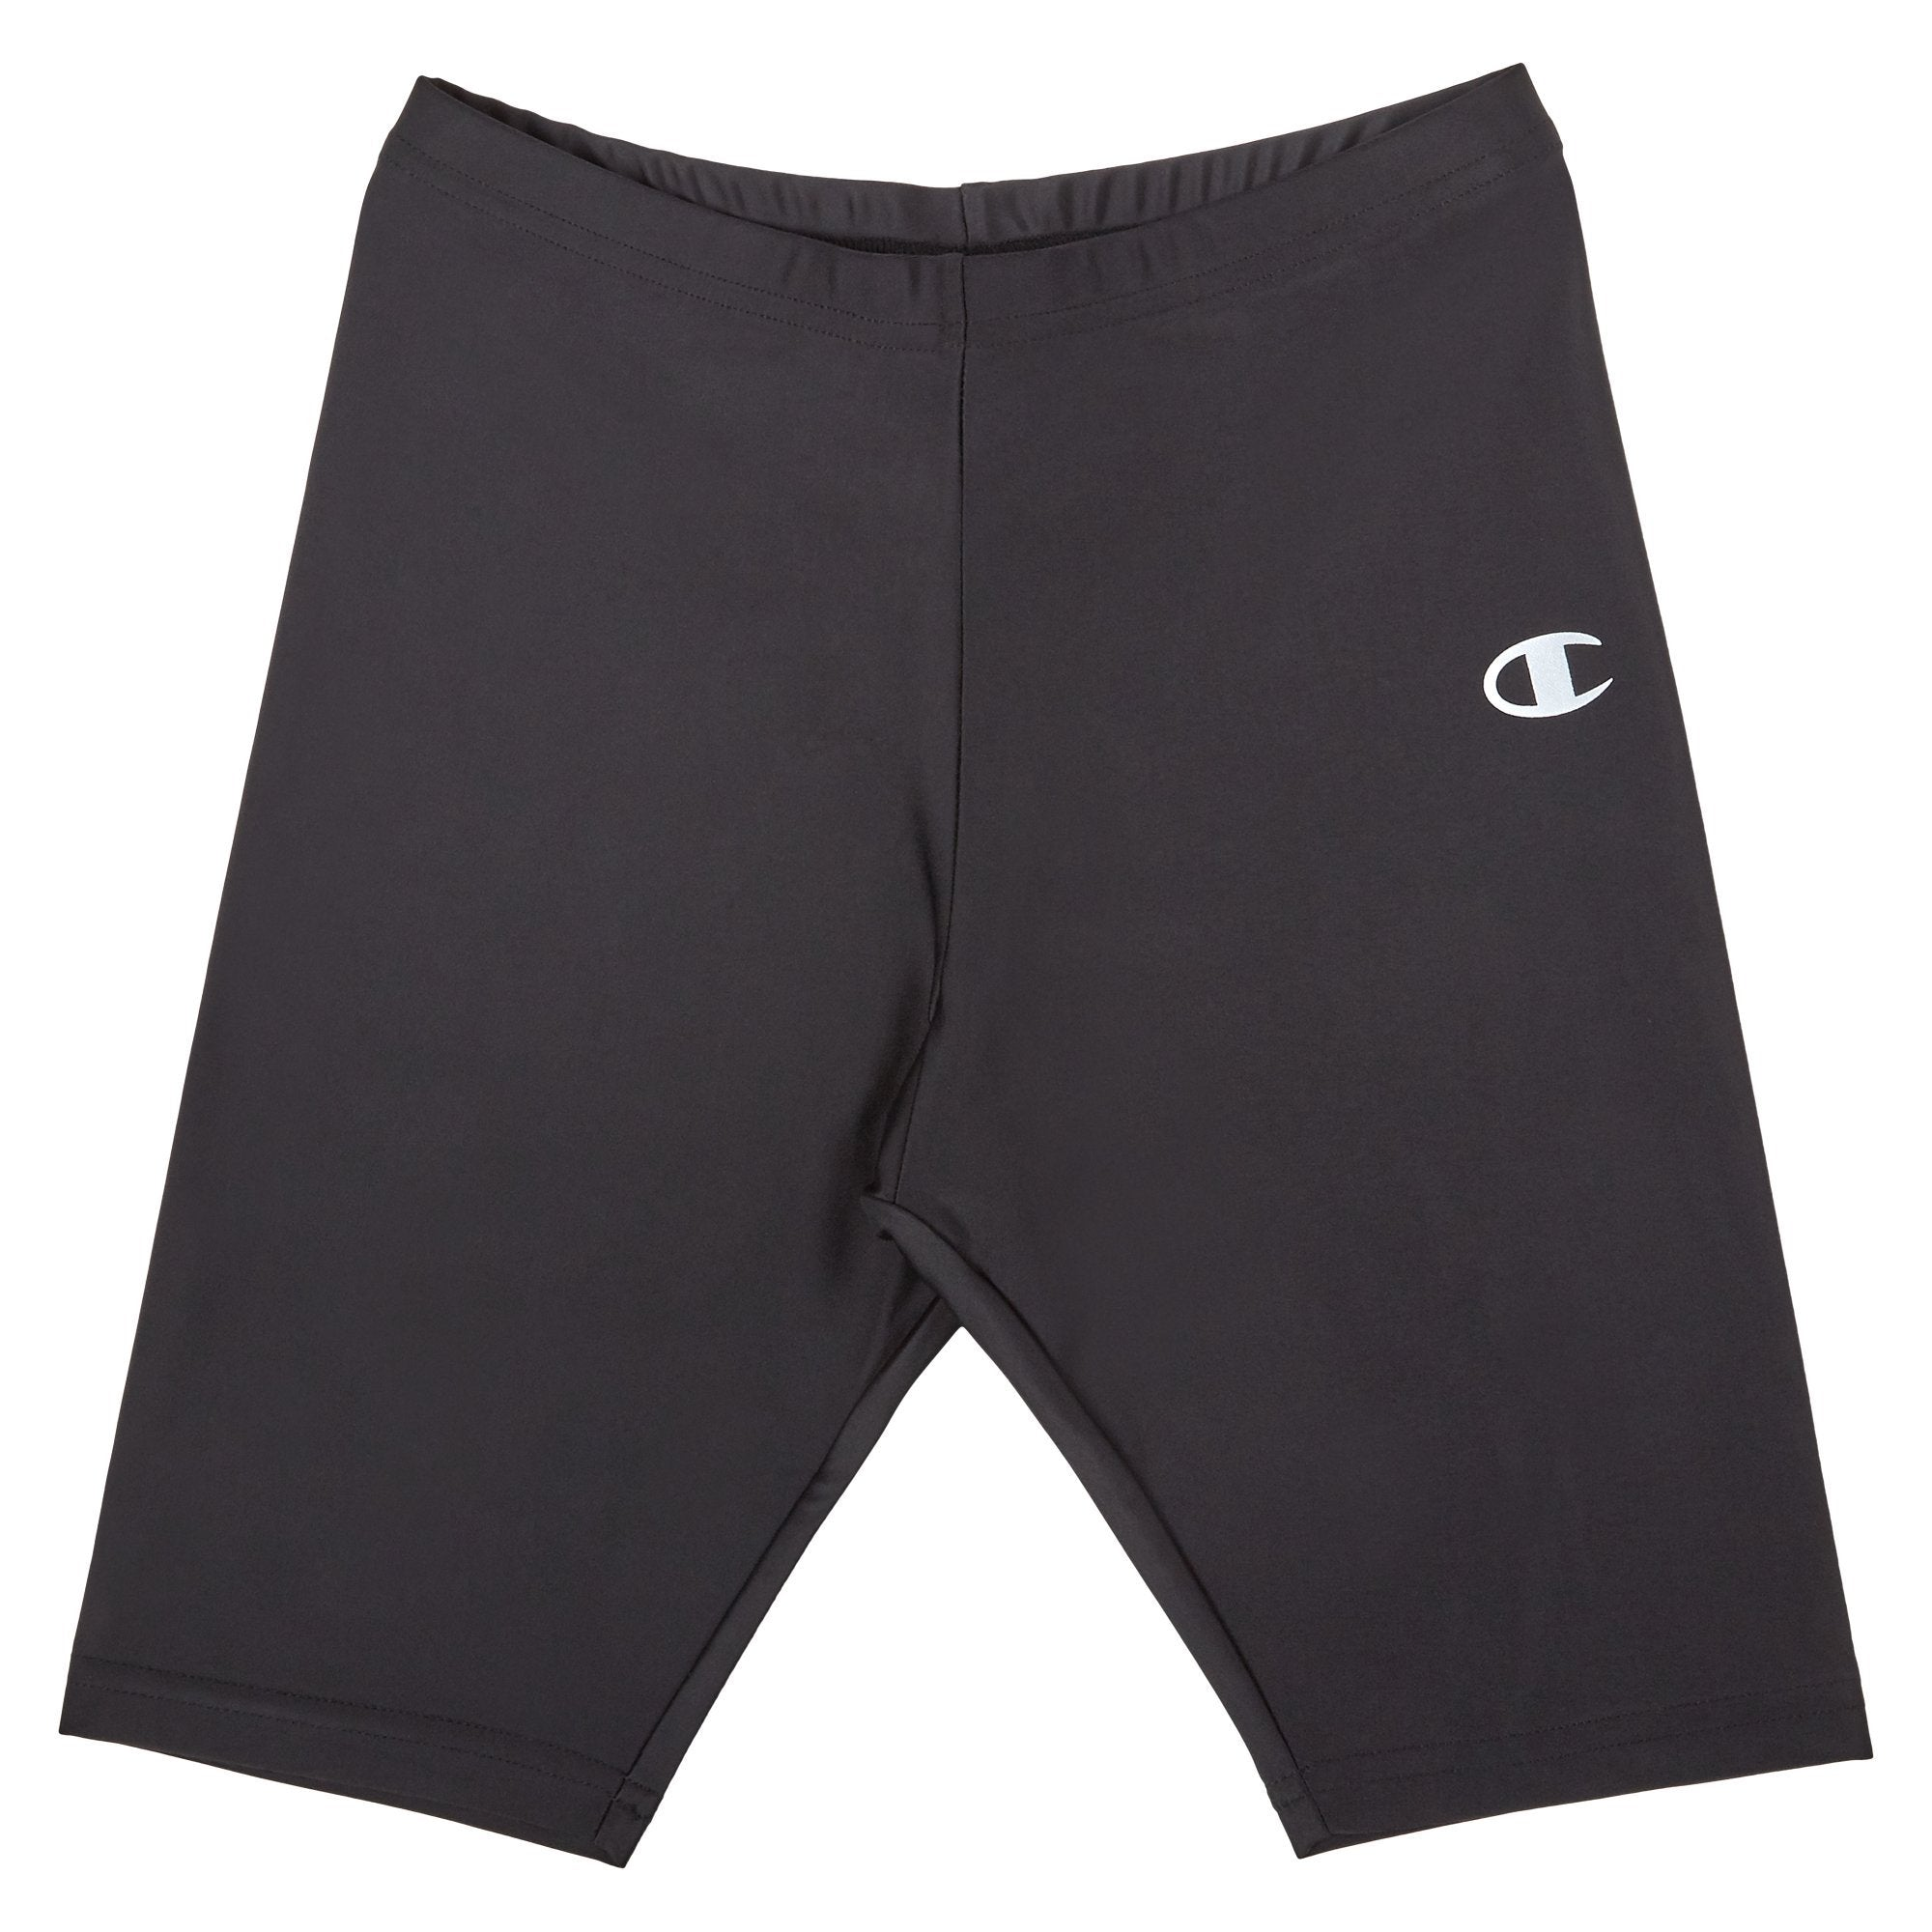 Champion Nylon Bike Shorts - Black Apparel Champion